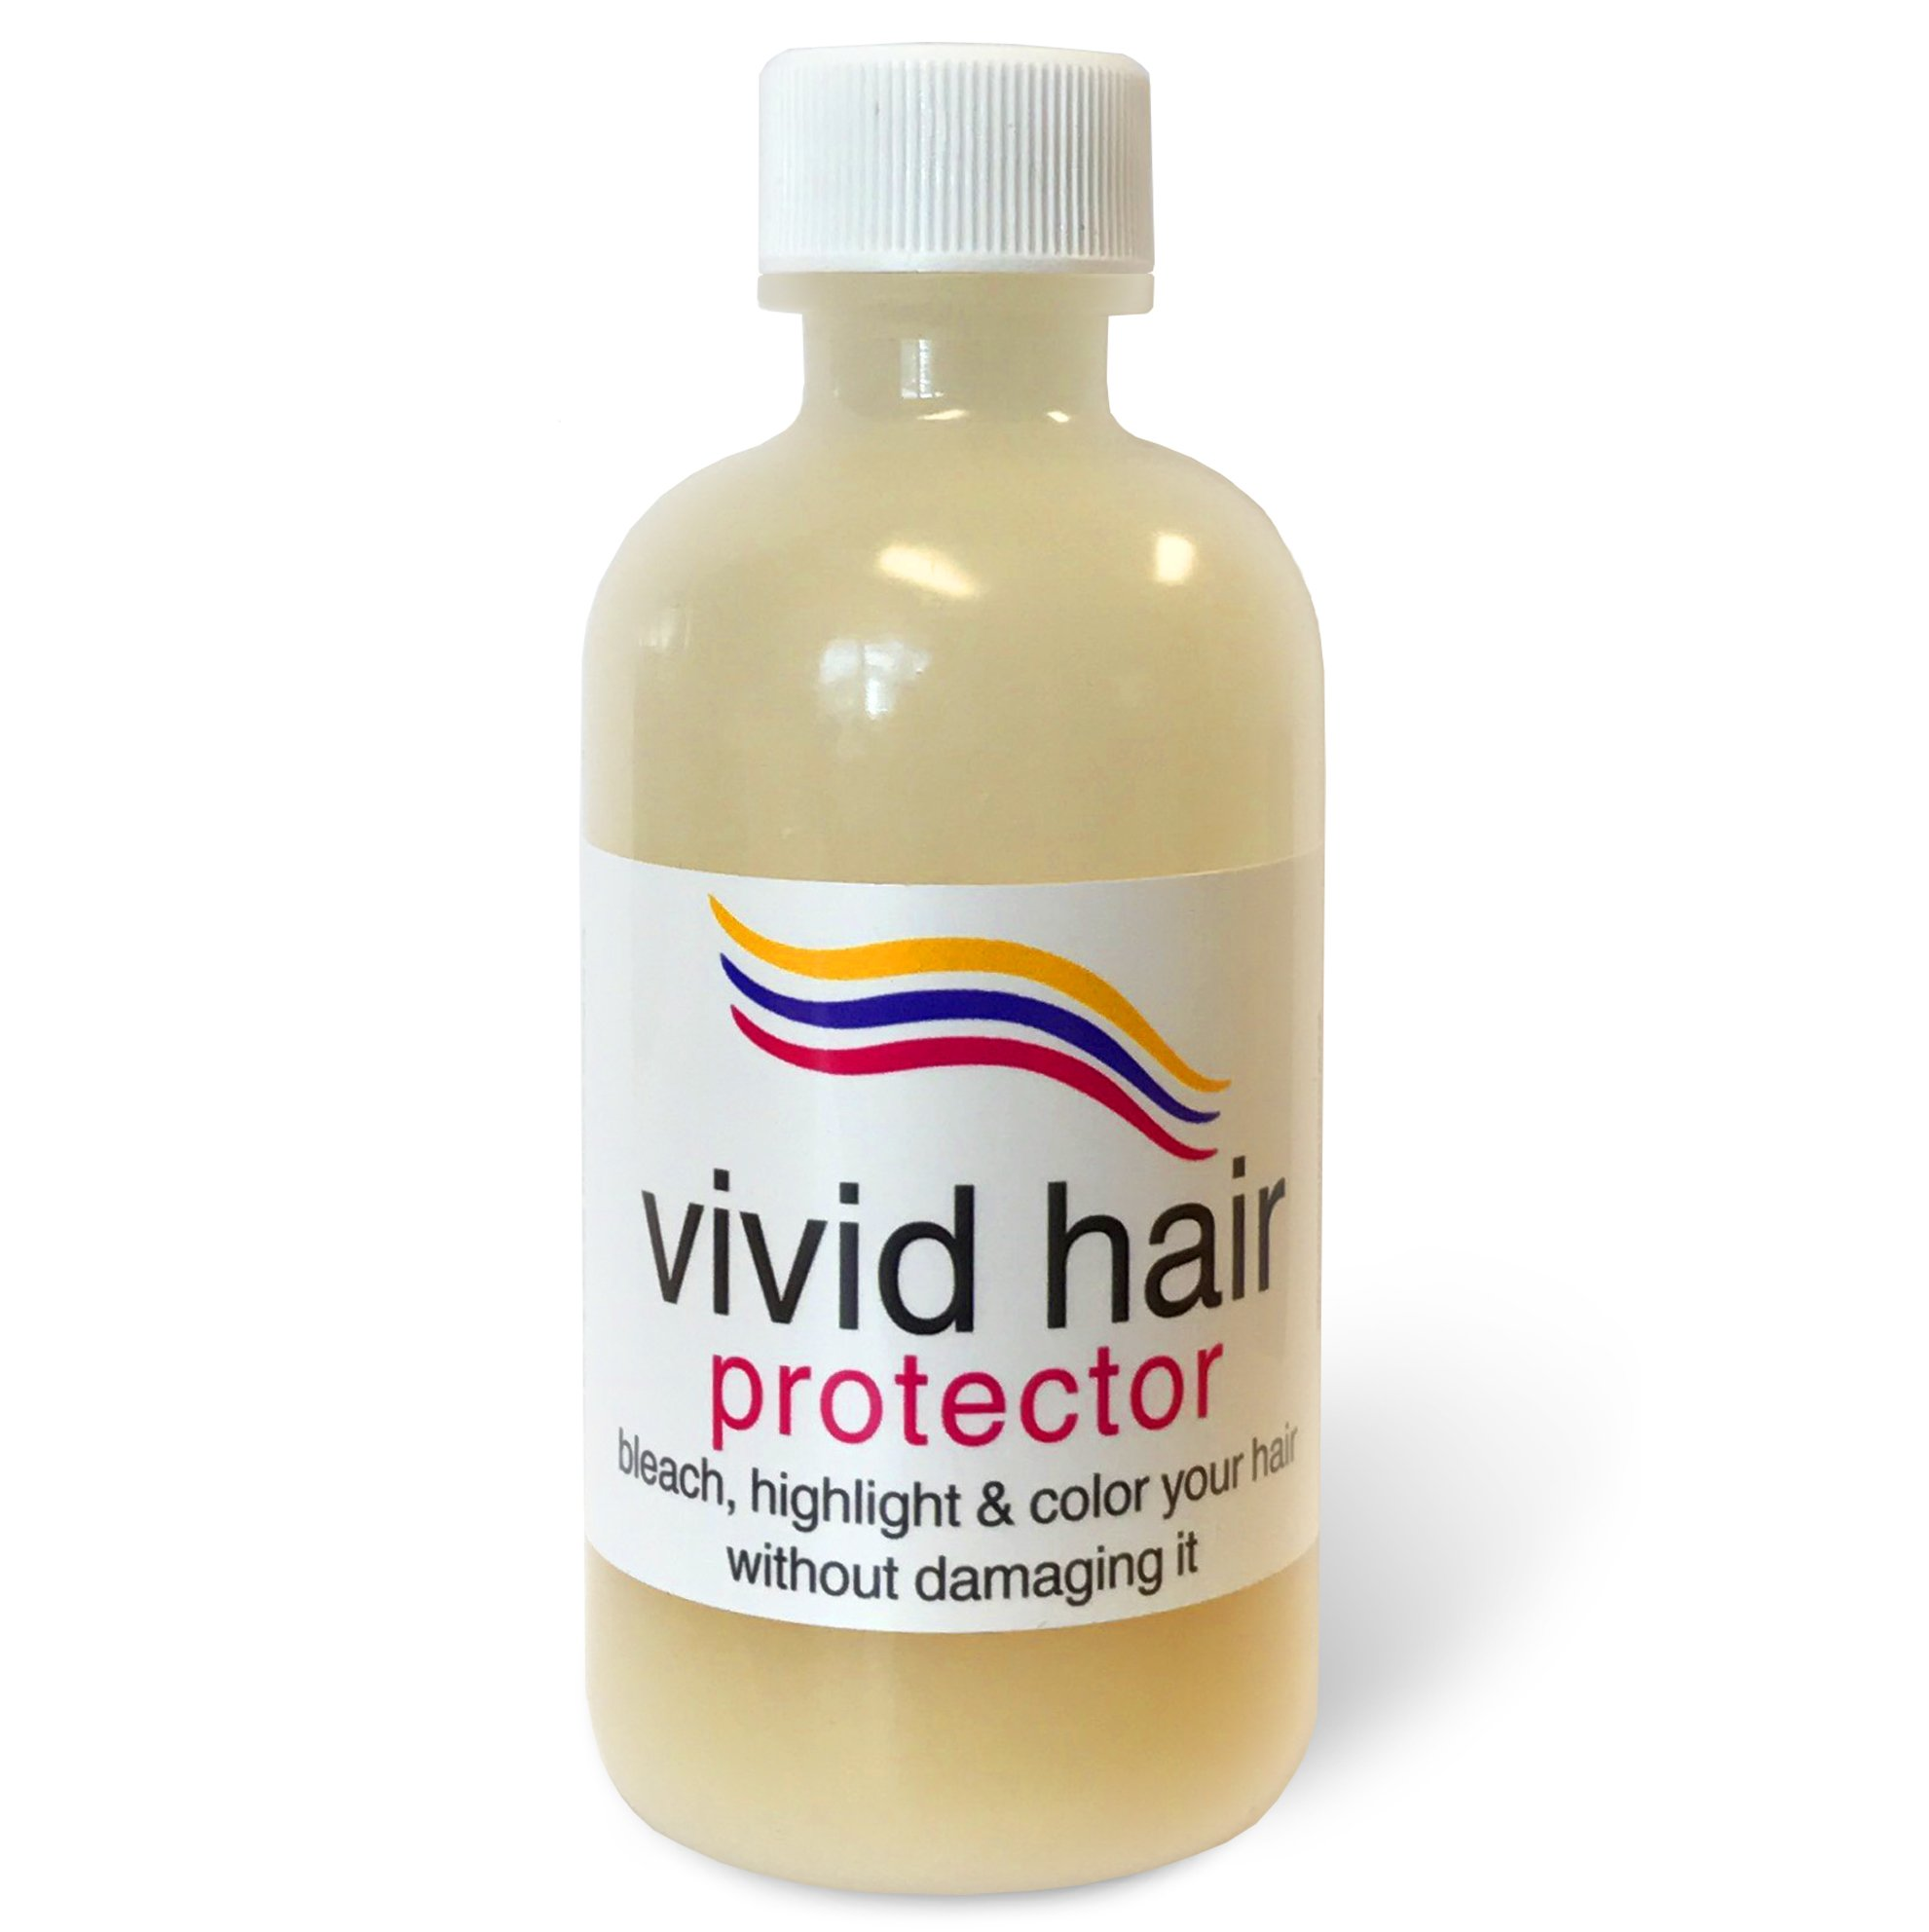 INVERTO VIVID HAIR Color Protector Perfector 120ml Prevent Hair Bleaching, Highlighting Coloring Damage From the Start safe for all blondes, vivid, bright & dark colors by INVERTO REVOLUTION